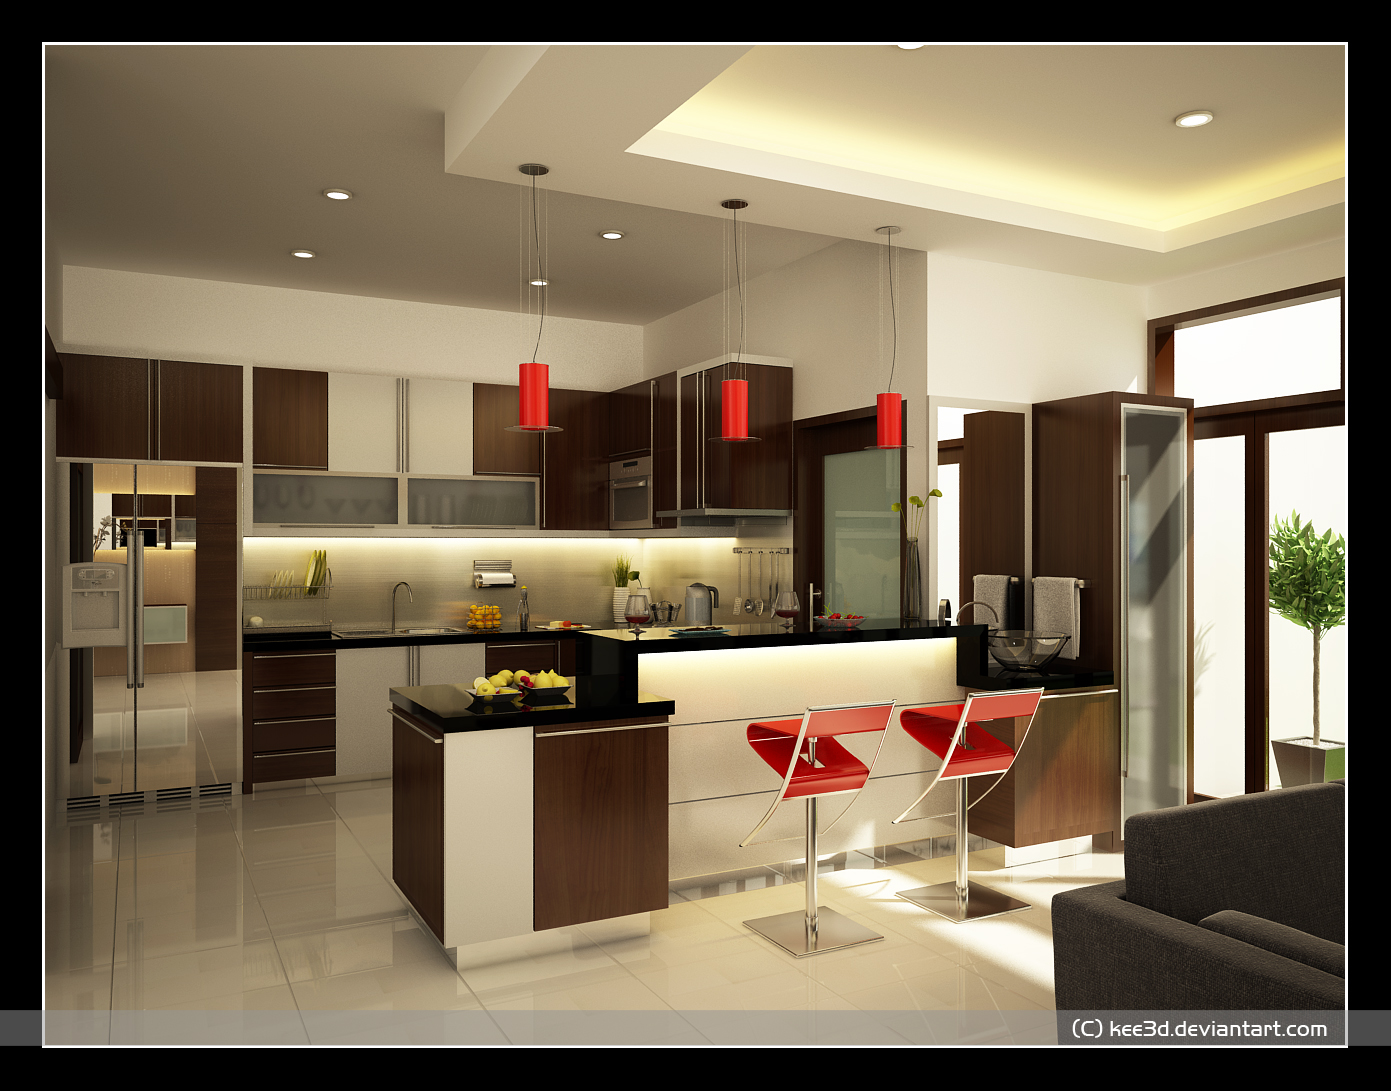 by octo brilian - House Kitchen Design